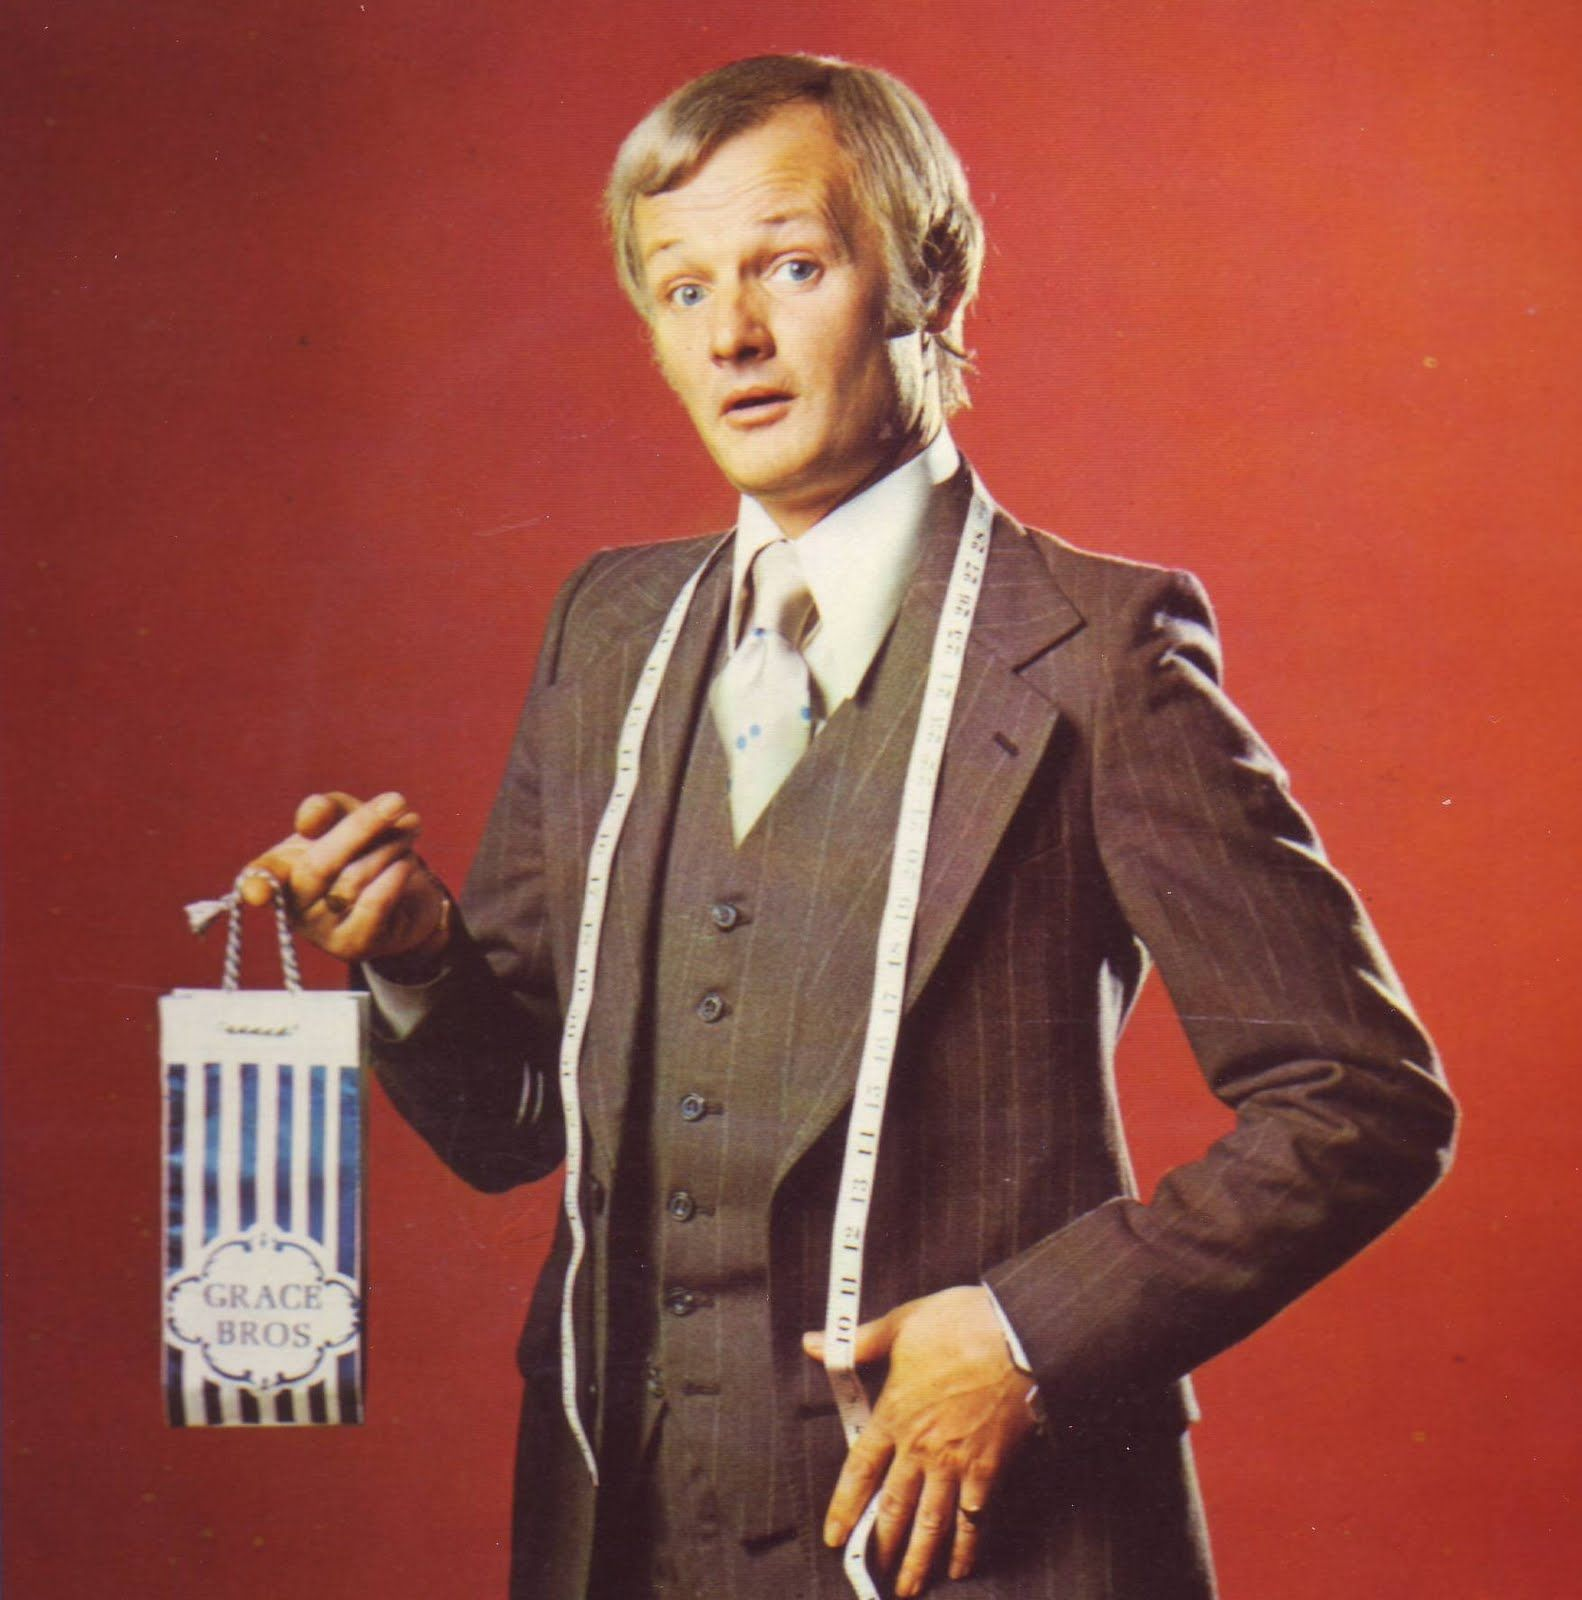 Mr. Wilberforce Claybourne Humphries from Are You Being Served?, Mr. Humphries, femme characters 13